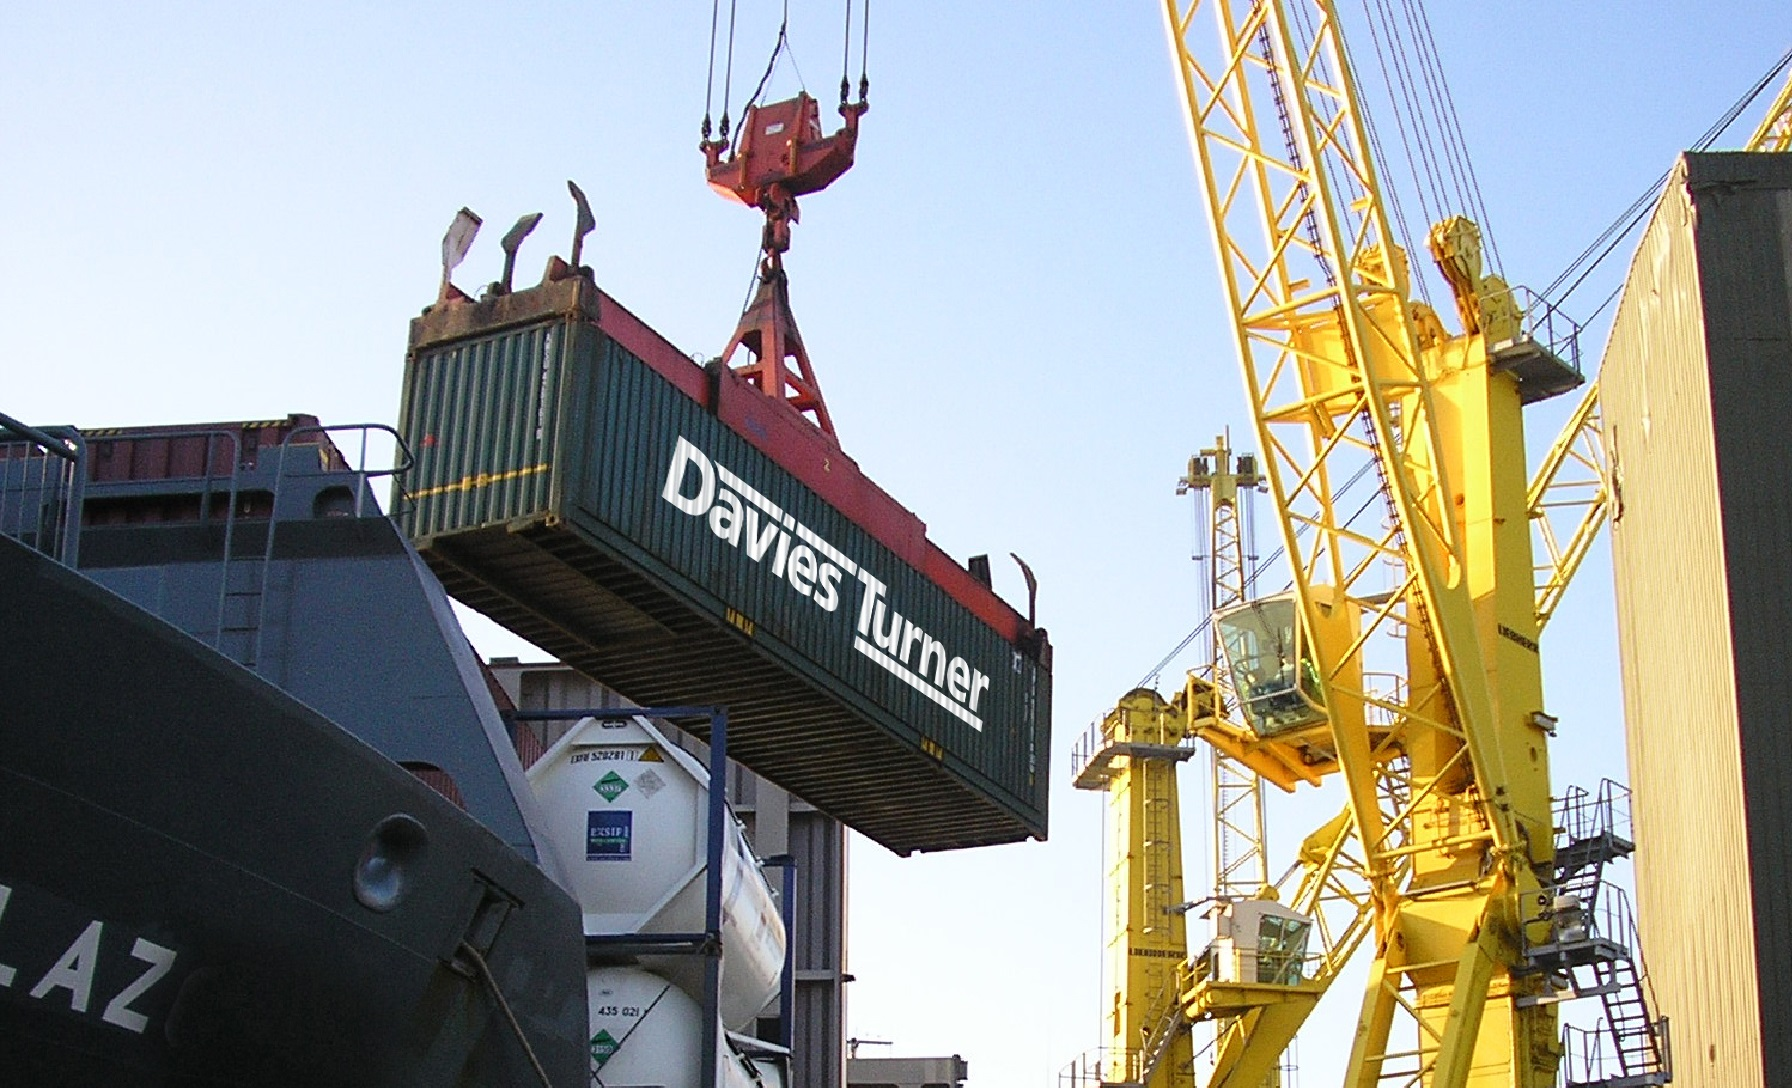 Davies Turner's Express China rail freight service sees container volumes double year-on-year